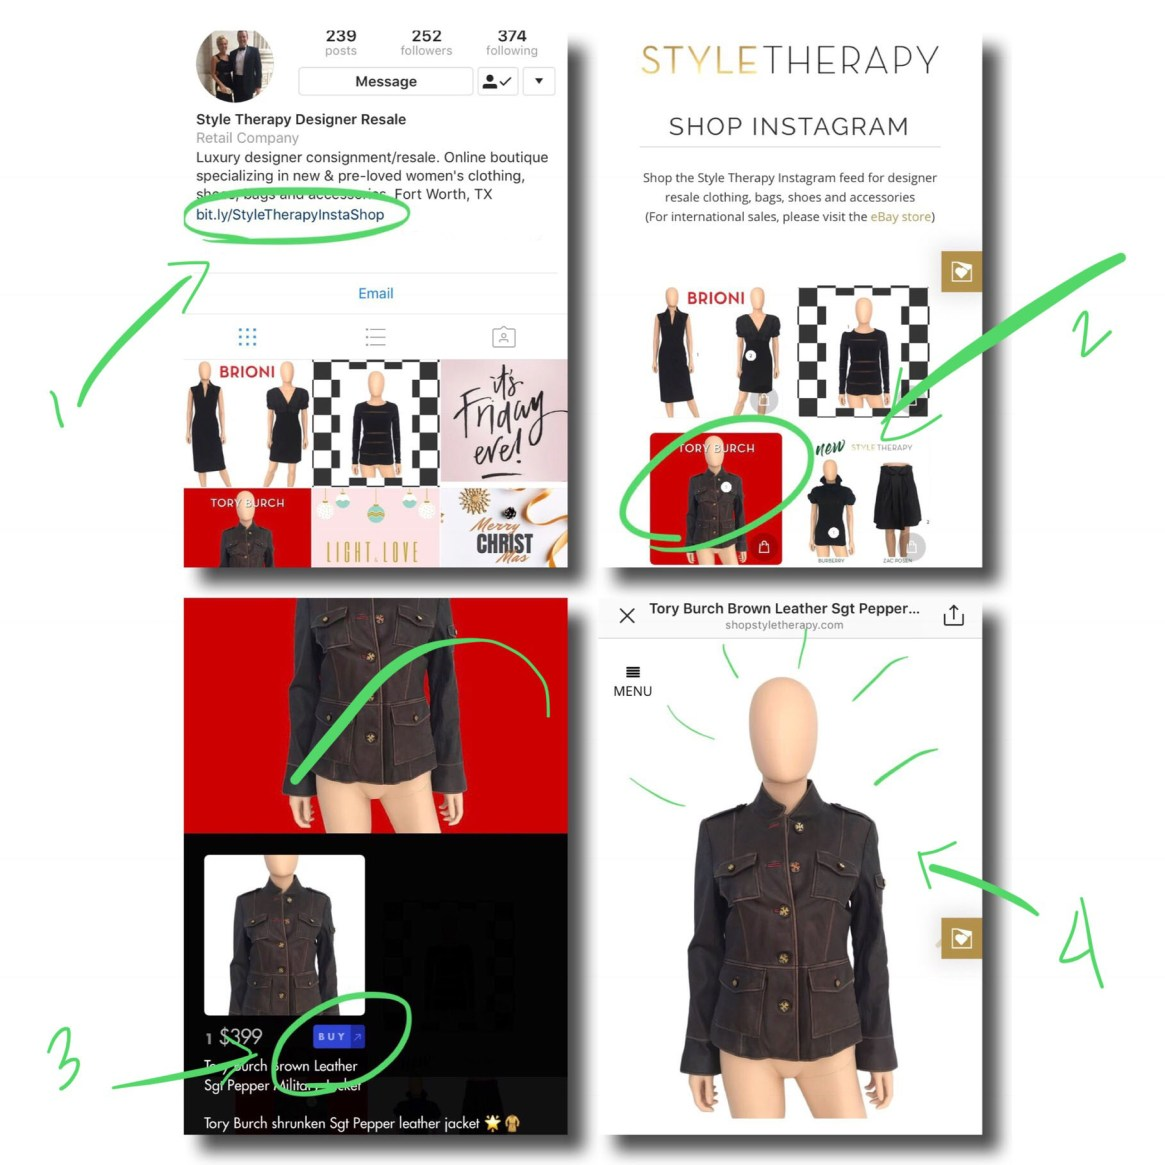 Shop the Style Therapy Instagram Feed